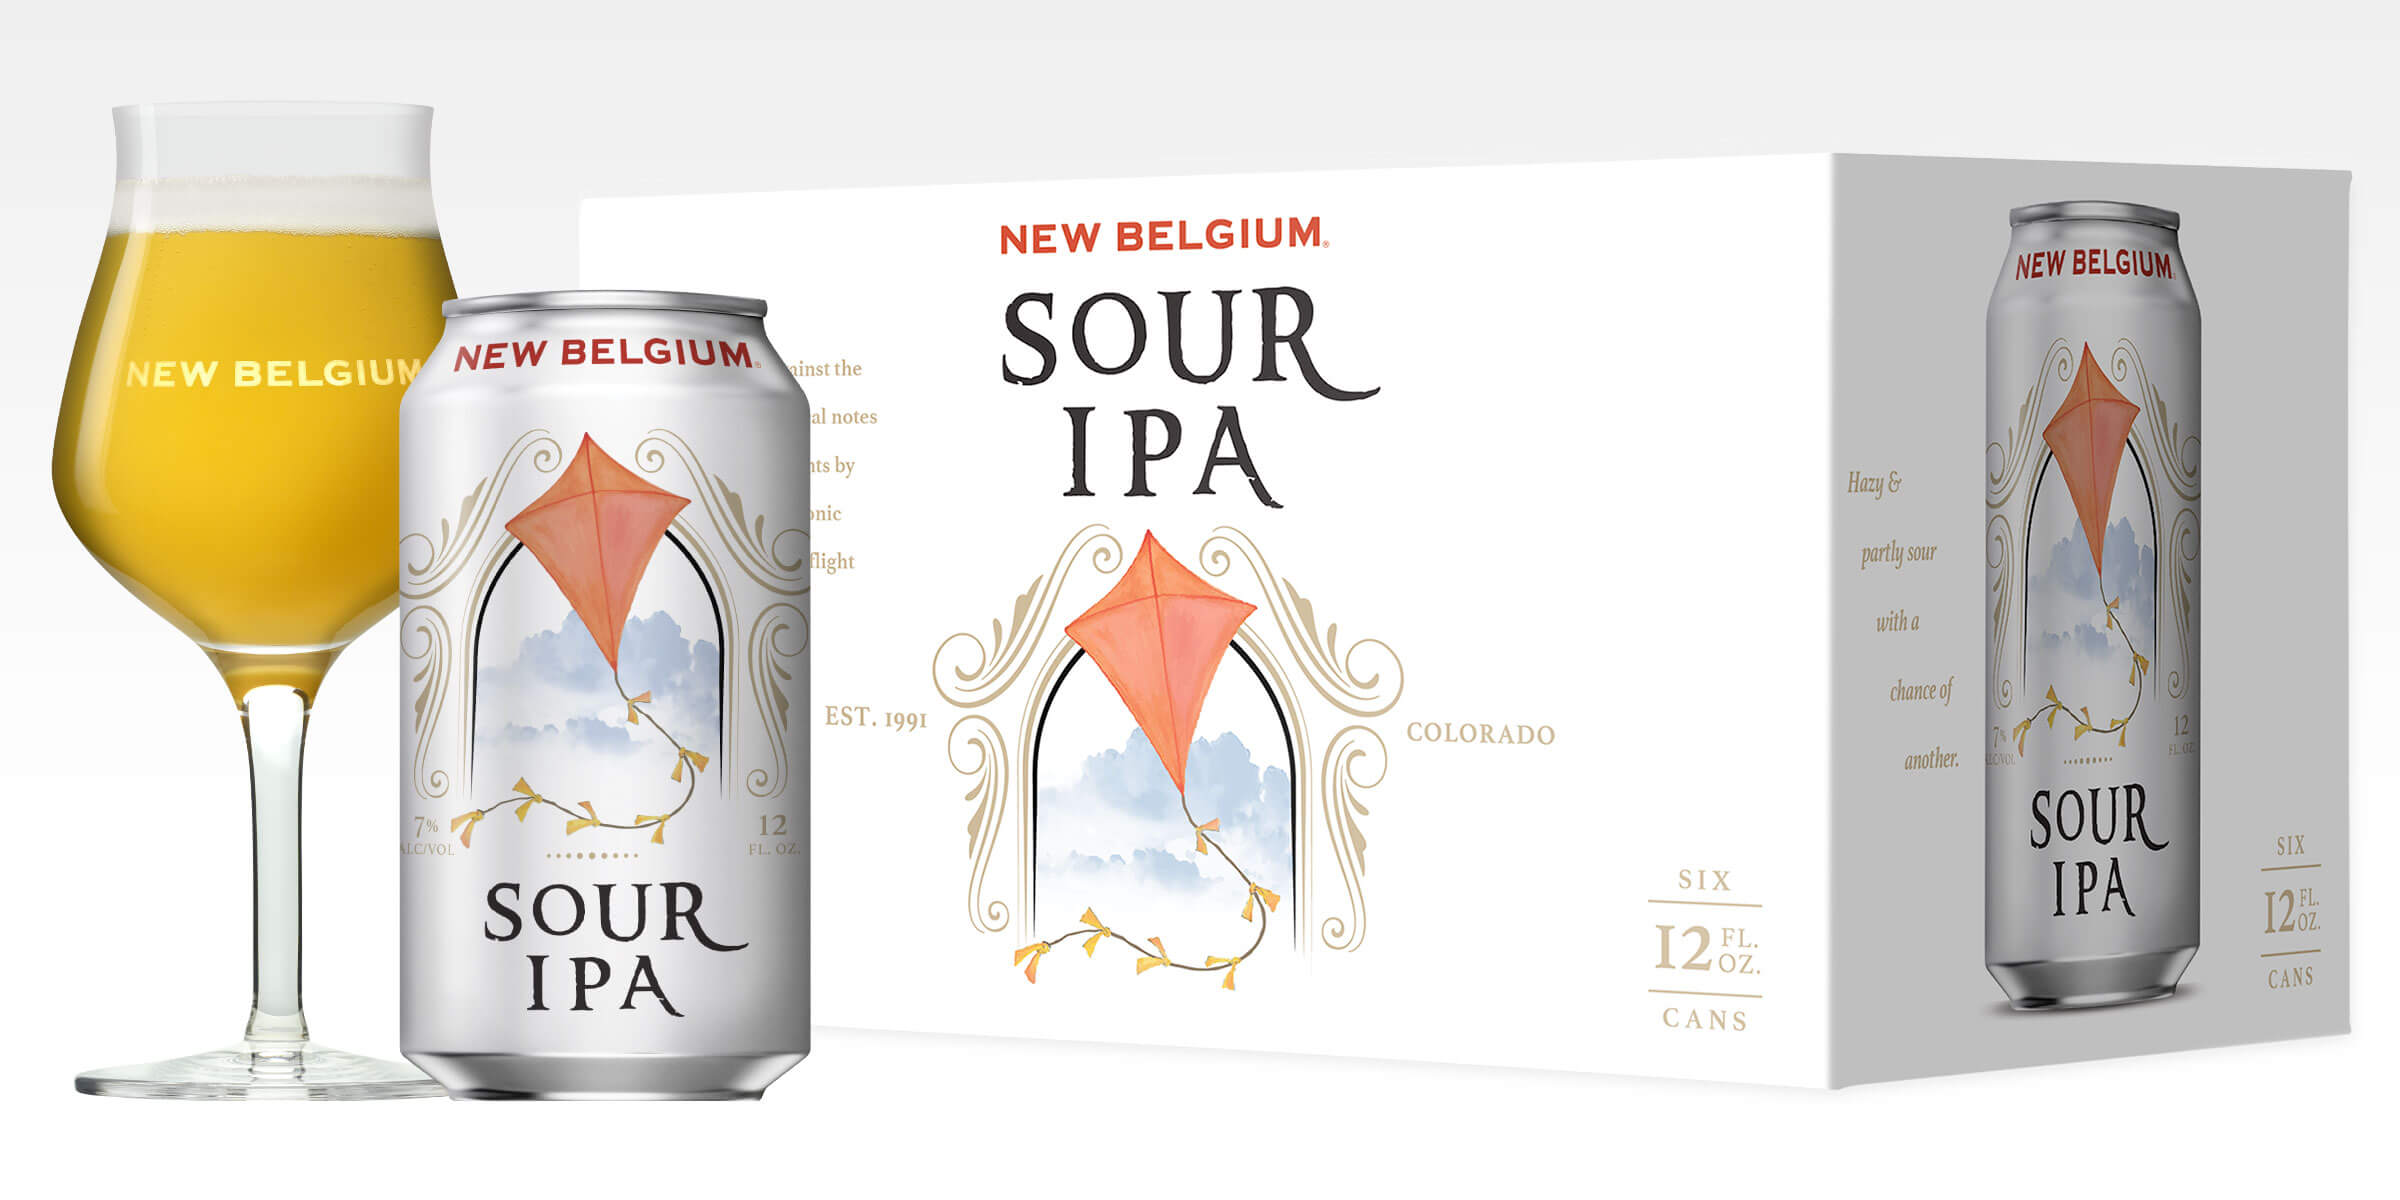 New Belgium Brewing Company announced the nationwide release of Sour IPA, a hazy, Citra and Amarillo dry-hopped IPA blended with authentic wood aged golden sour.